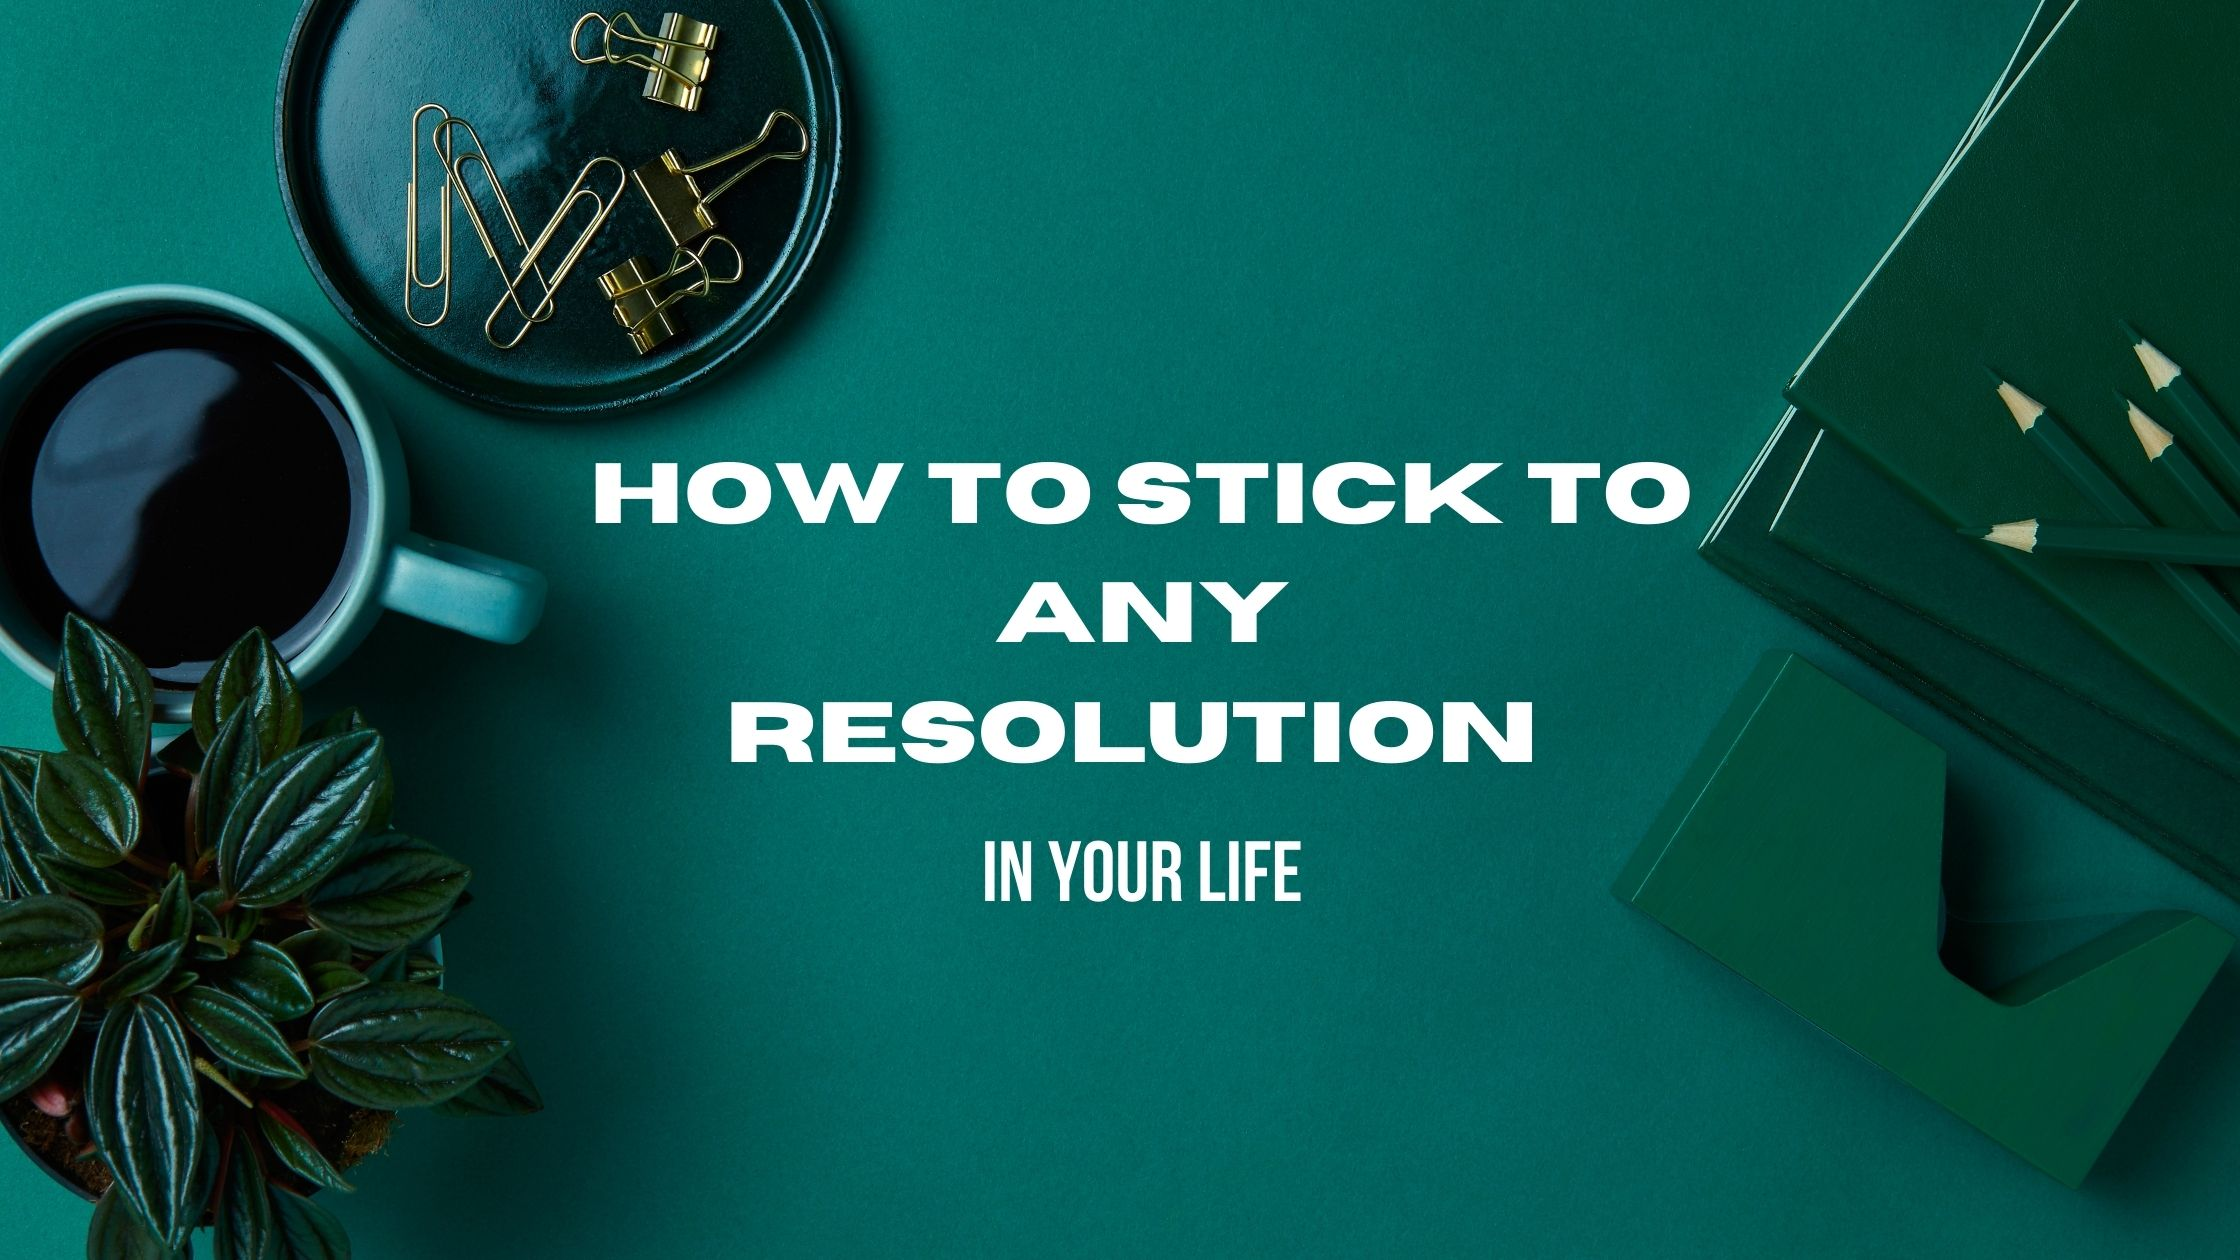 How to stick to resolution in life